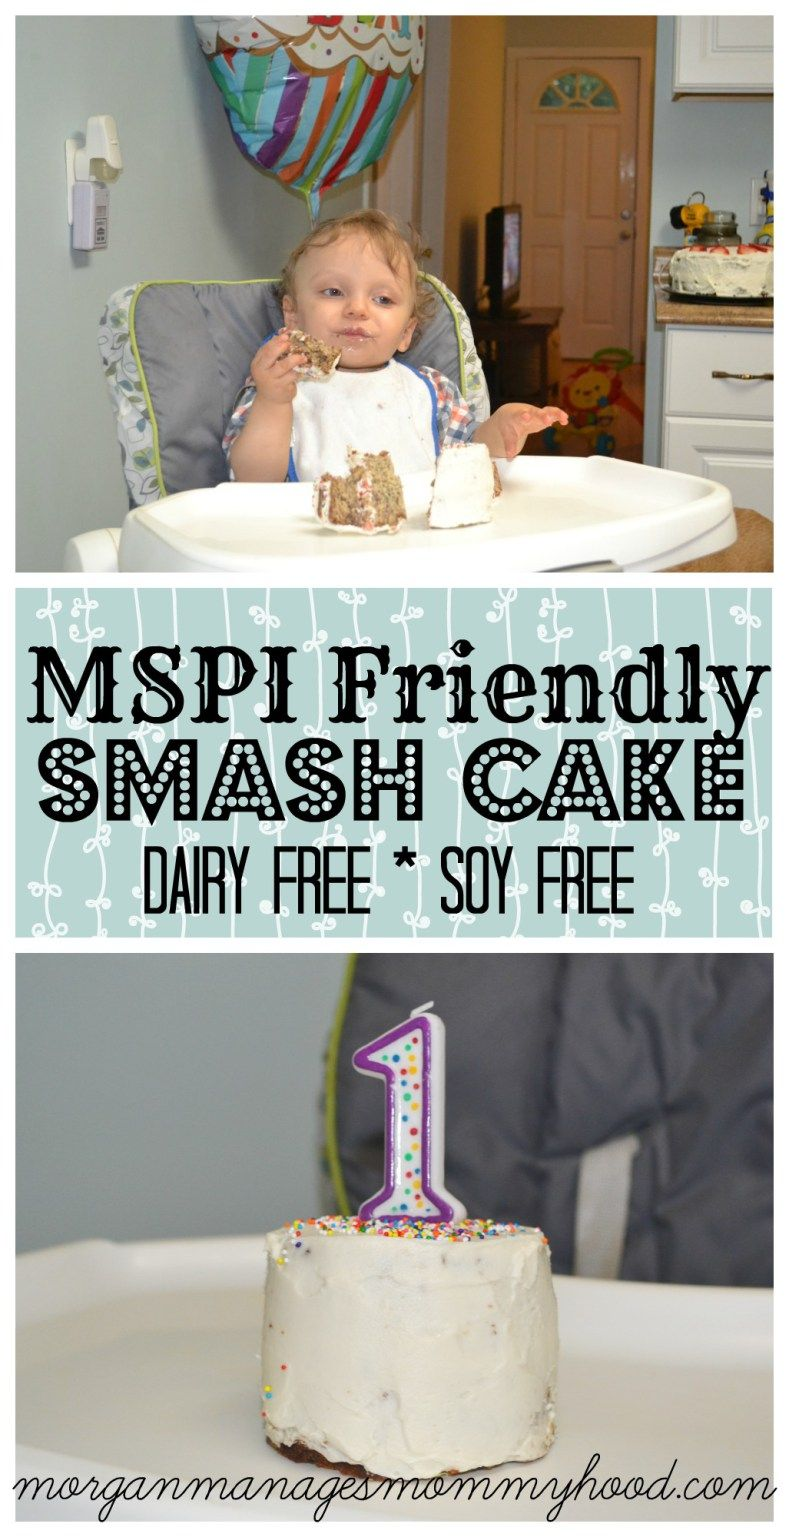 Mspi Friendly Birthday Cake Food Allergies Pinterest Cake